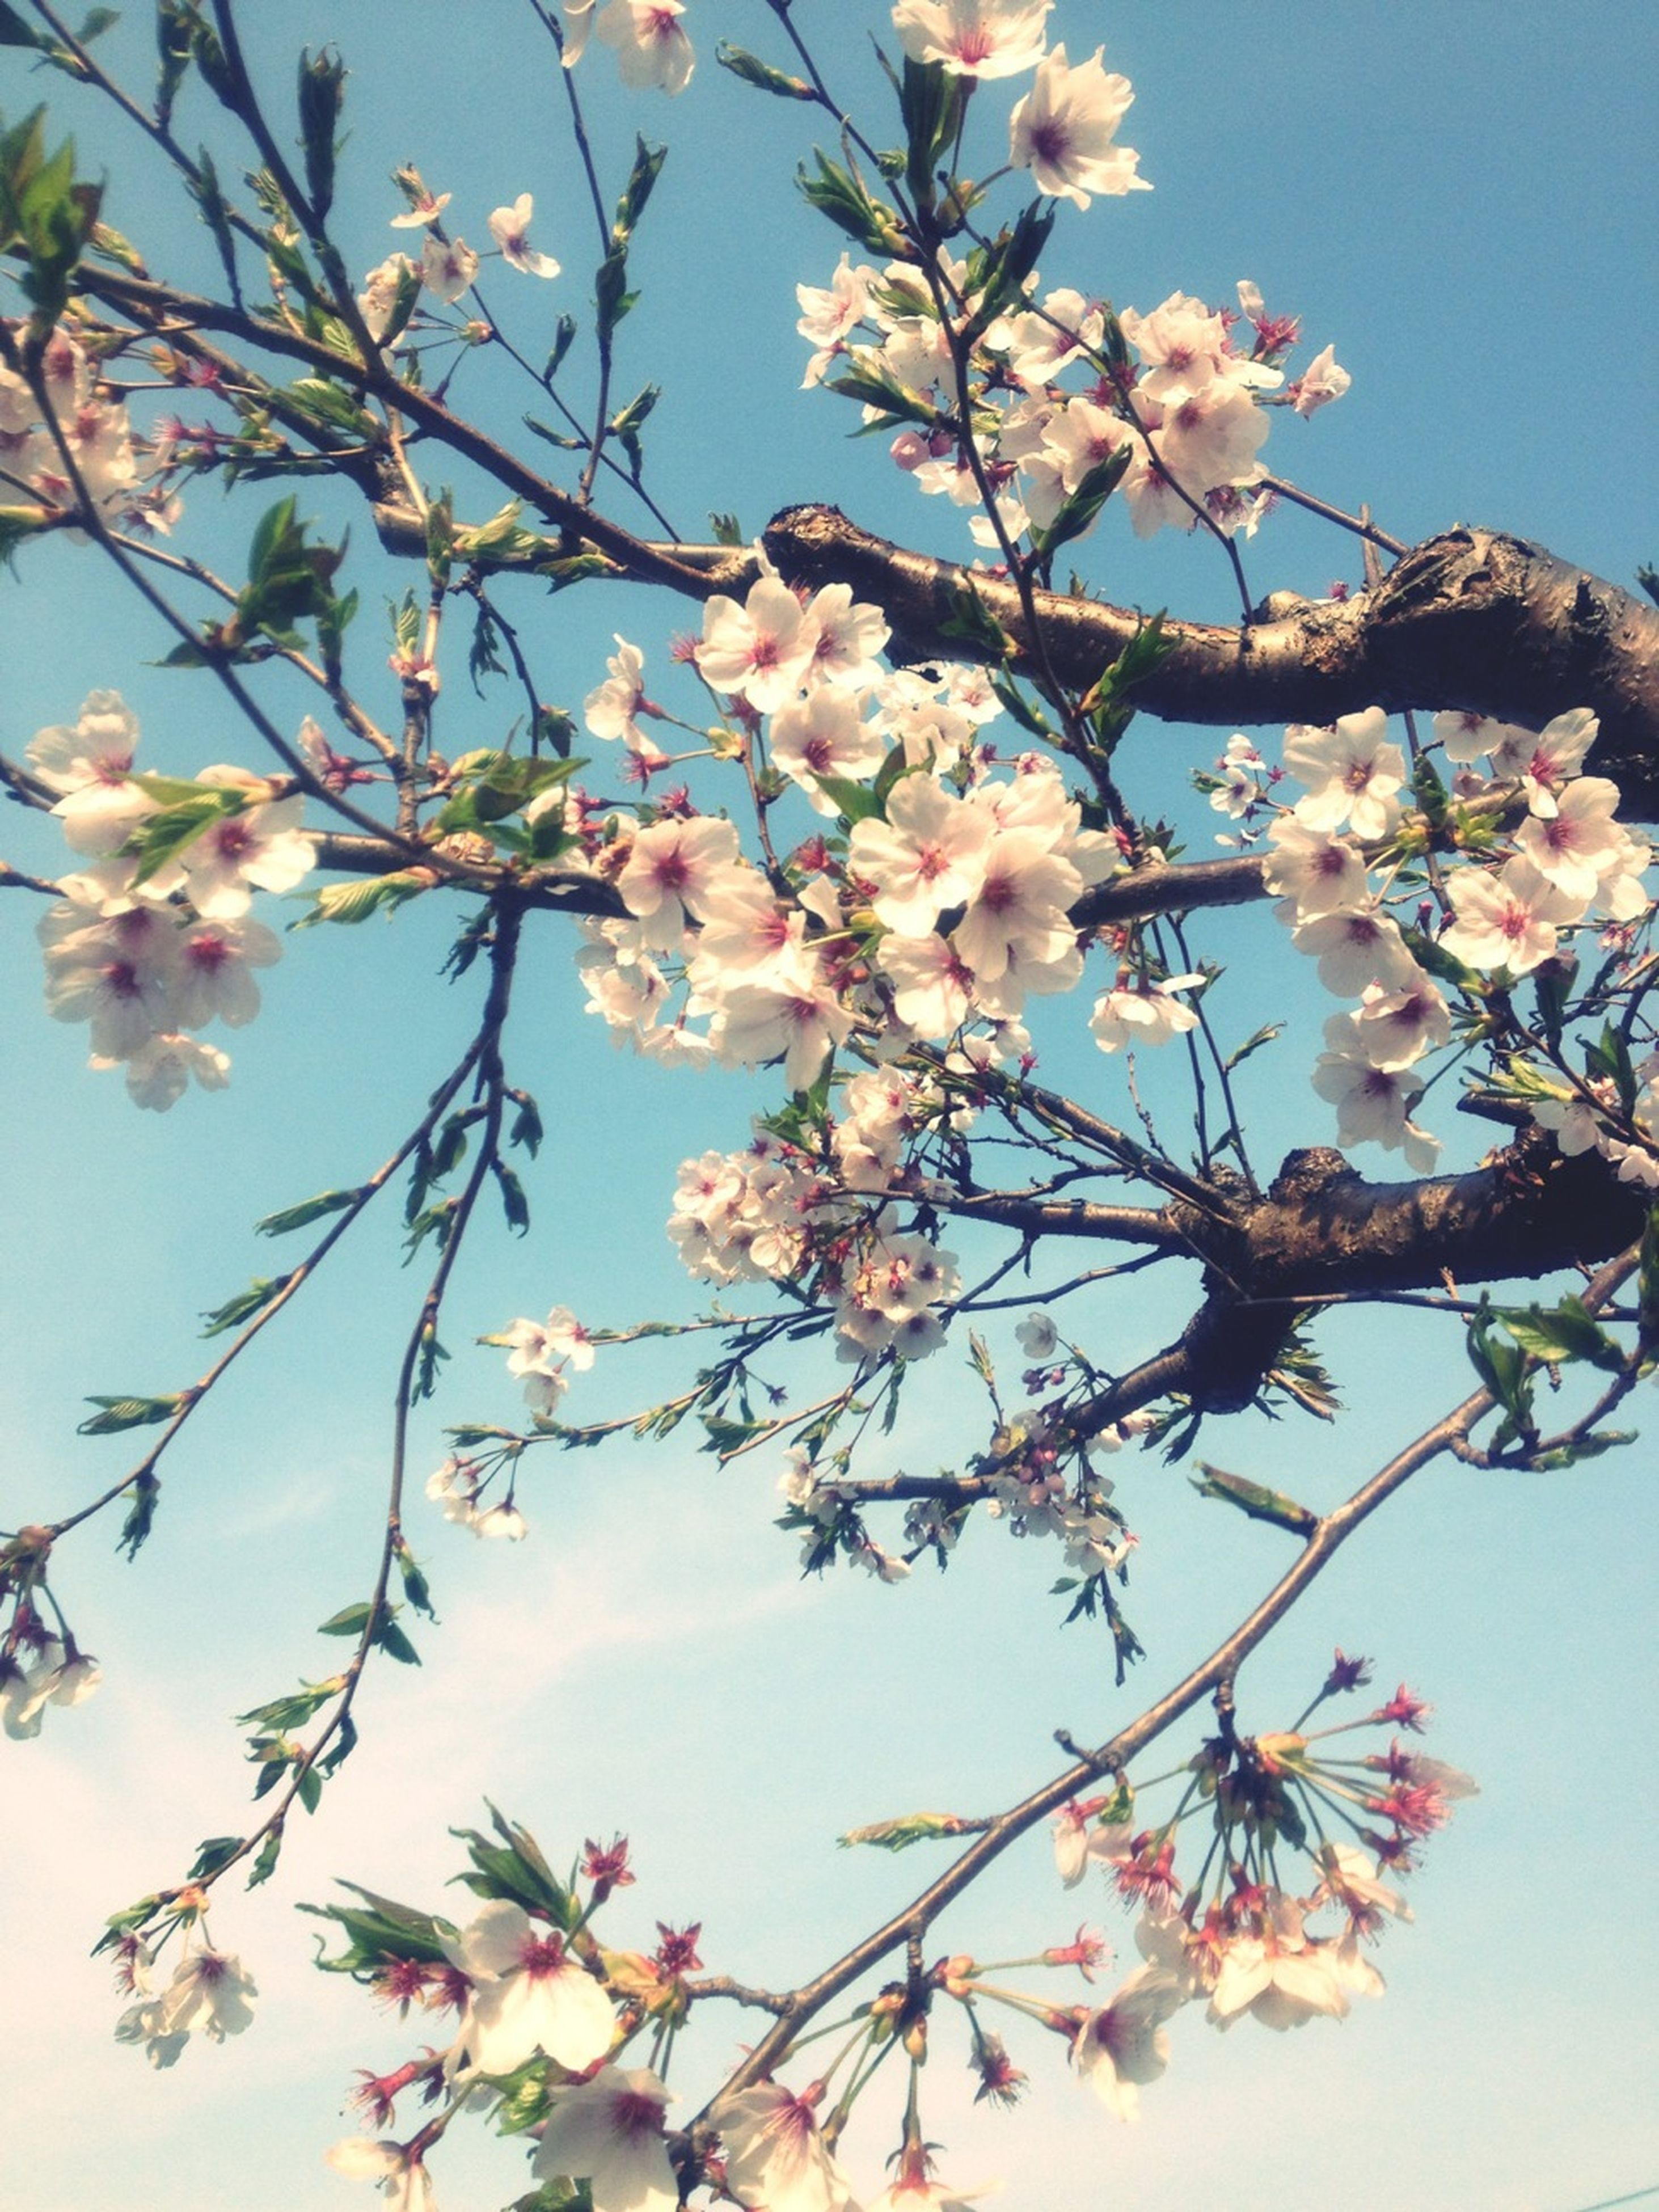 flower, freshness, branch, fragility, growth, blossom, low angle view, cherry blossom, tree, beauty in nature, cherry tree, petal, nature, blooming, in bloom, clear sky, springtime, fruit tree, pink color, twig